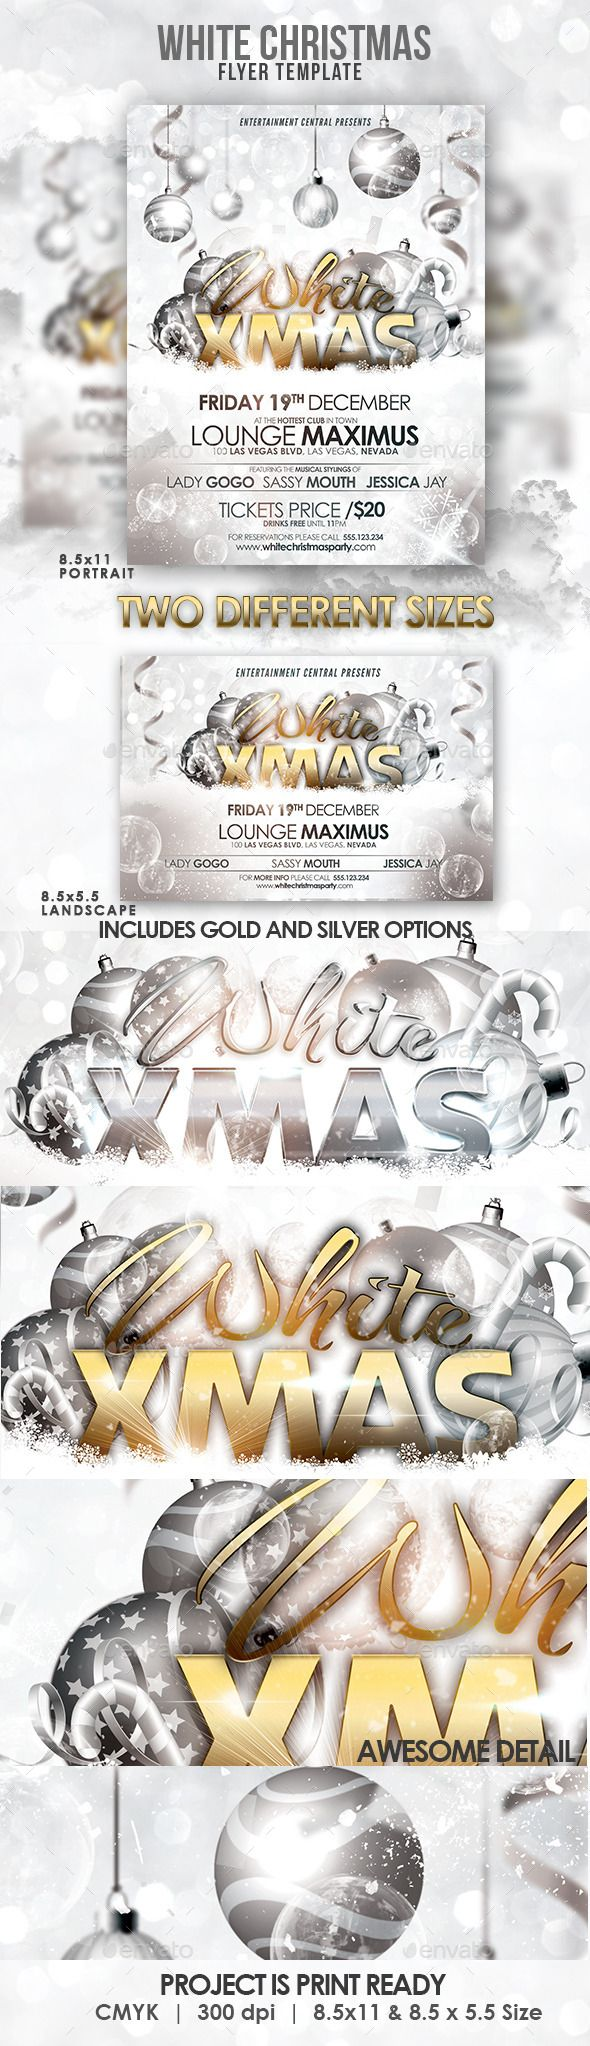 34 best Flyers templates images on Pinterest | Christmas parties ...